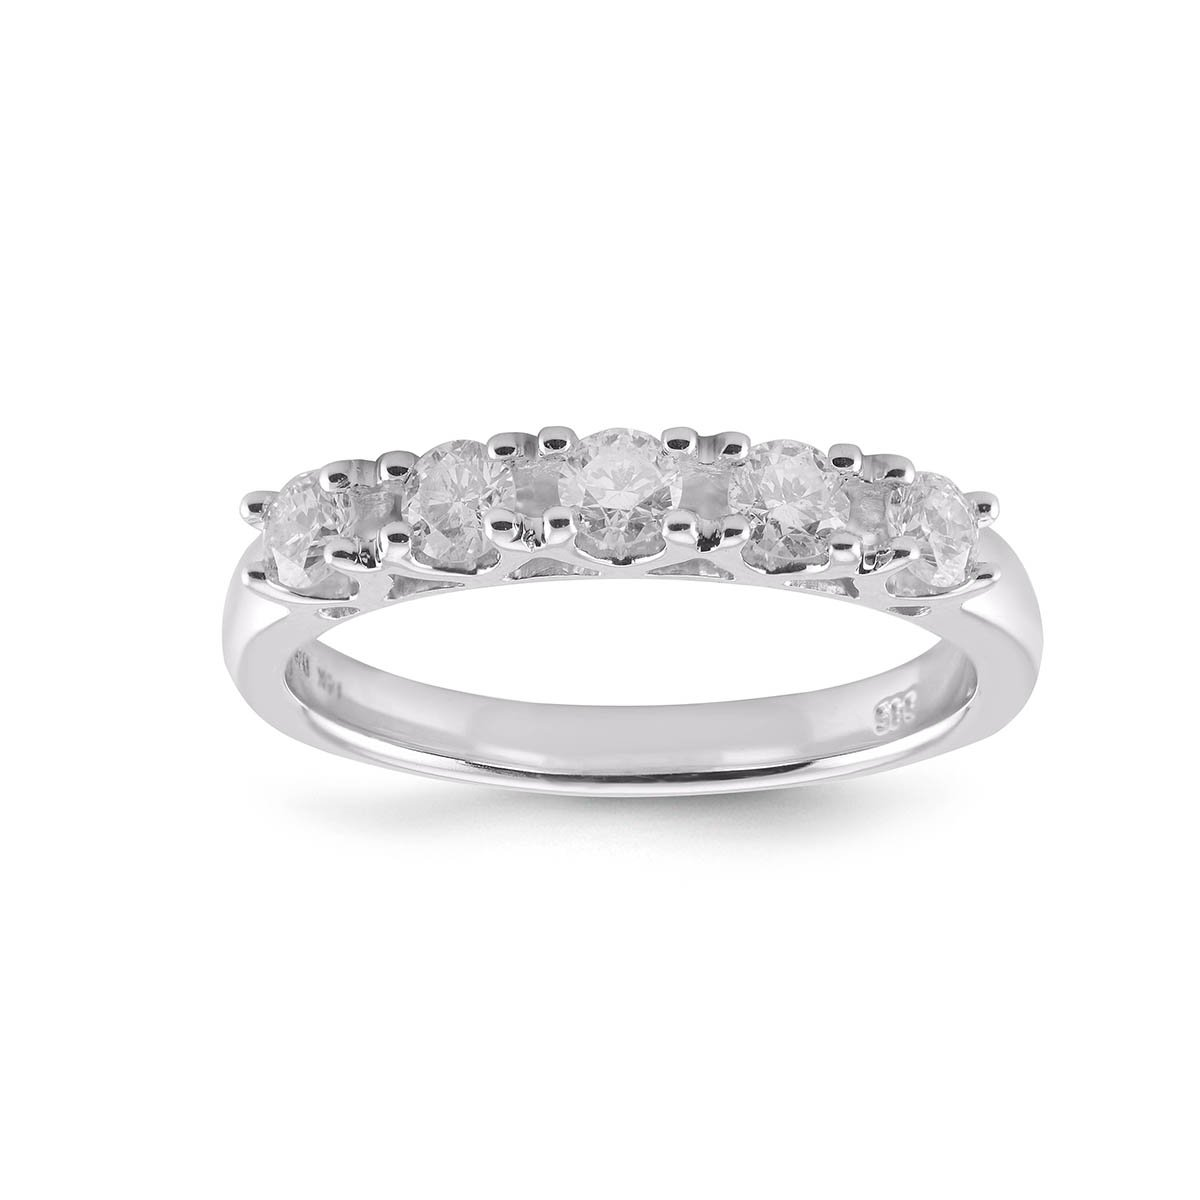 Diamond2Deal 5 Stone Diamond Wedding Ring in 14K White Gold 0.25ct Size 6 by Diamond2Deal (Image #1)